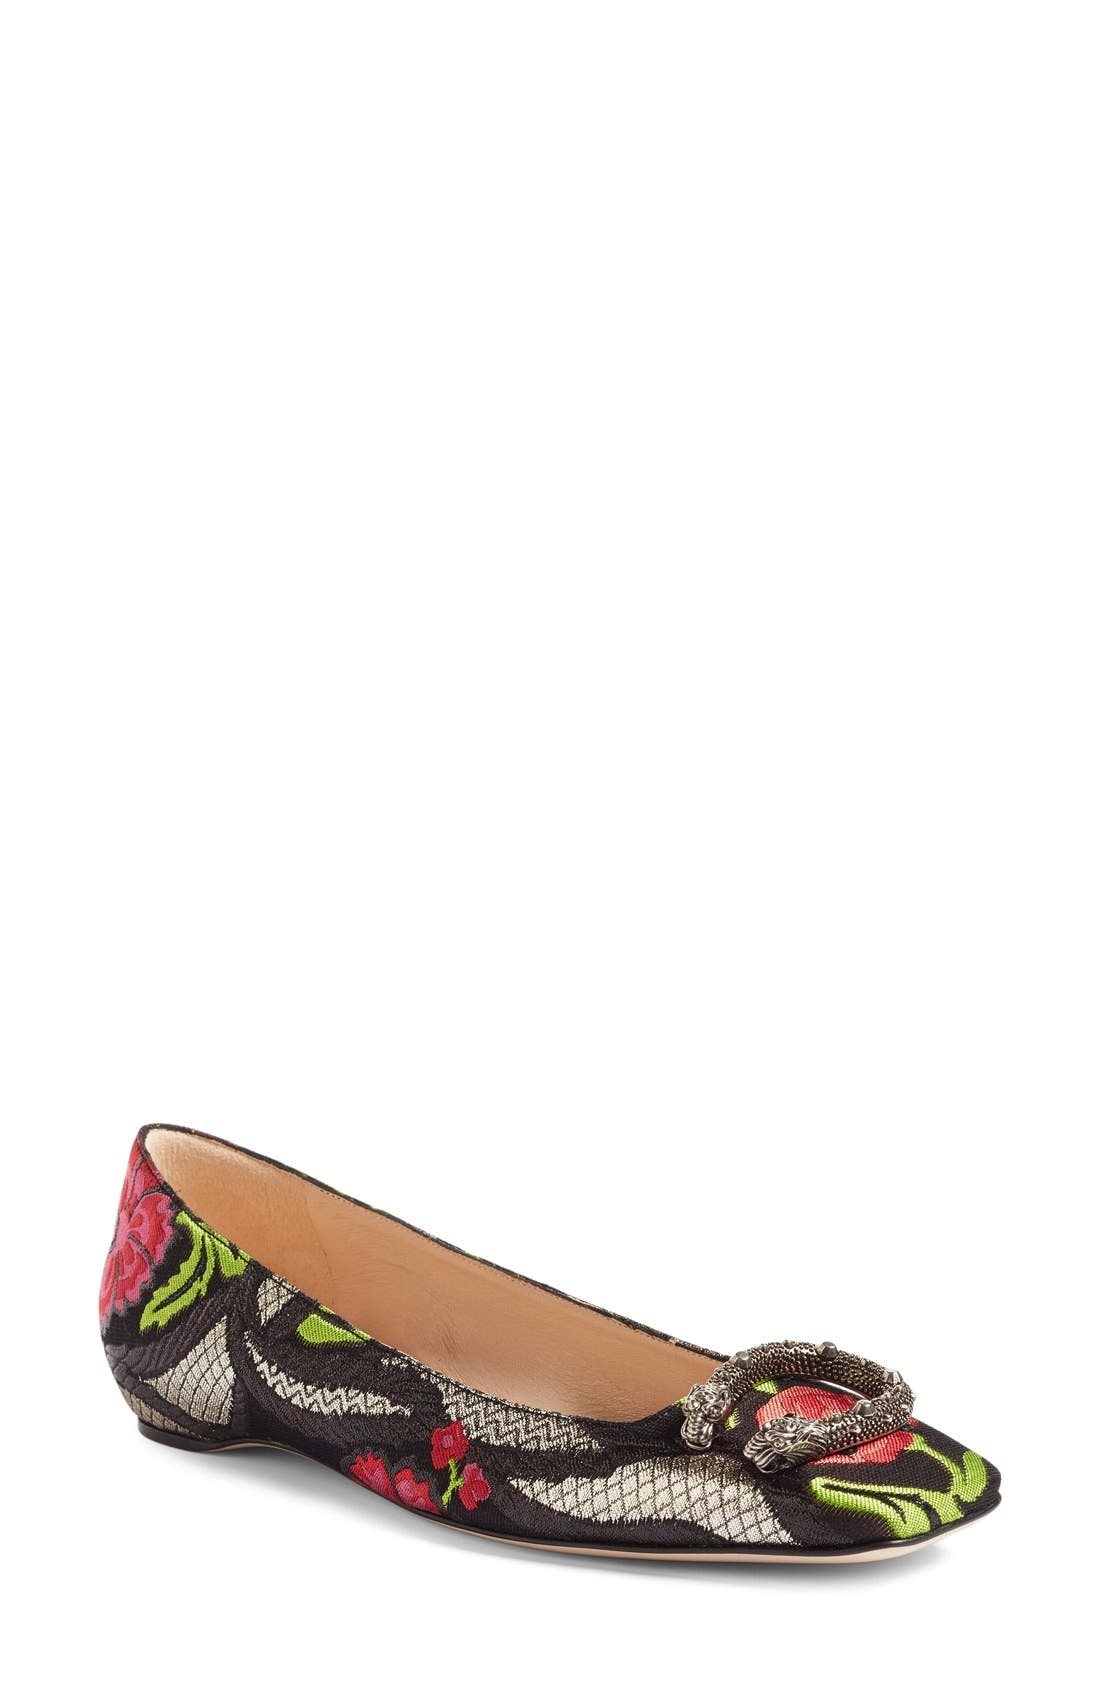 Gucci Dionysus Embellished Square Toe Flat (Women)